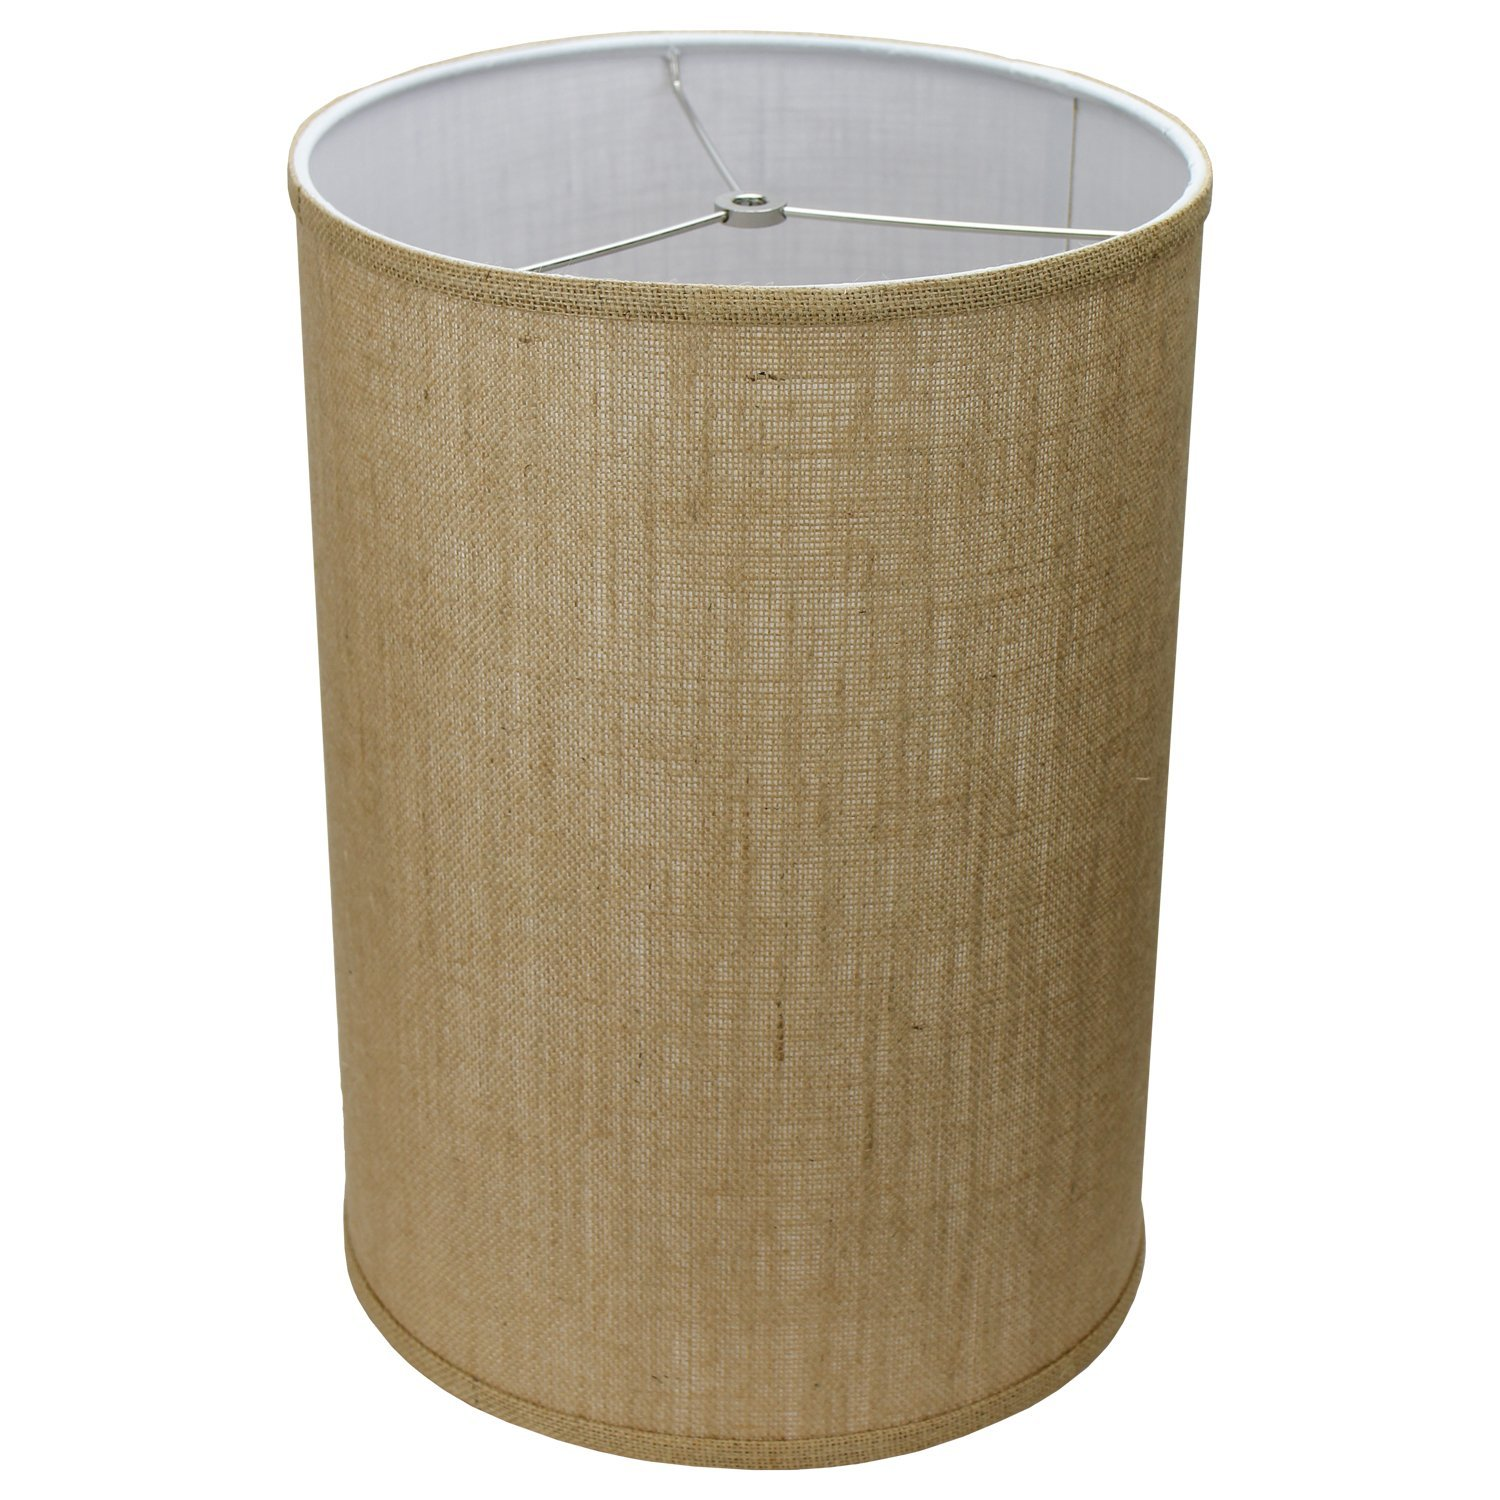 FenchelShades.com 12'' Diameter x 17'' Height Drum Lampshade Retro Rustic Vintage Hardback USA Made (Burlap Natural)